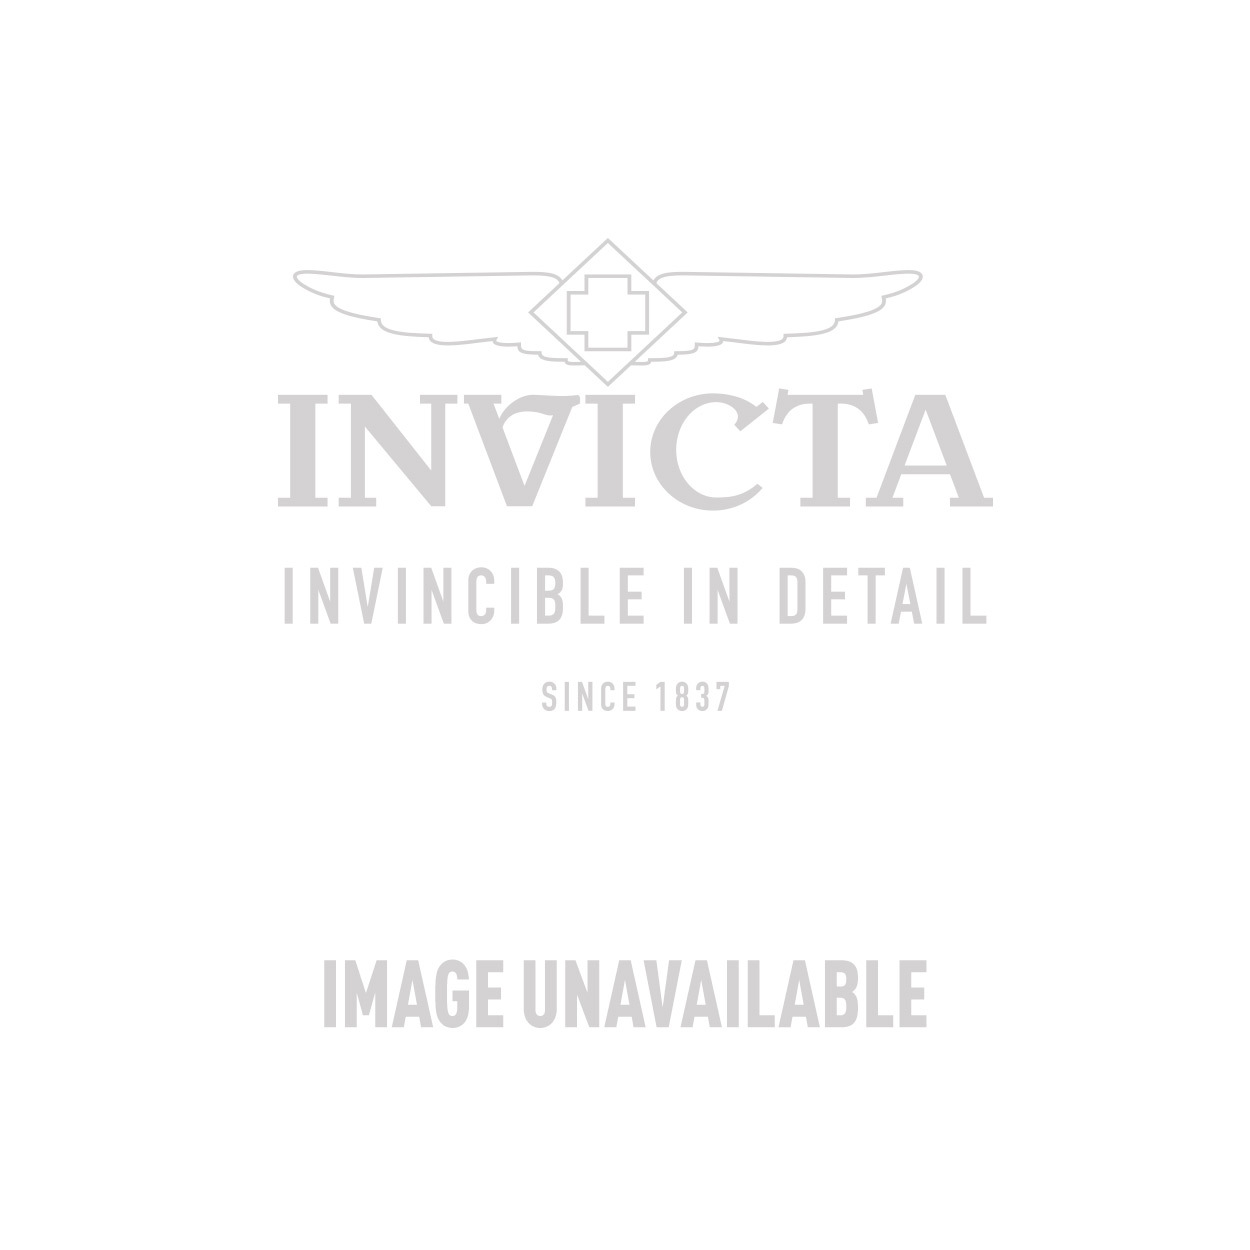 Invicta DNA Swiss Movement Quartz Watch - Stainless Steel case with Black tone Silicone band - Model 10438